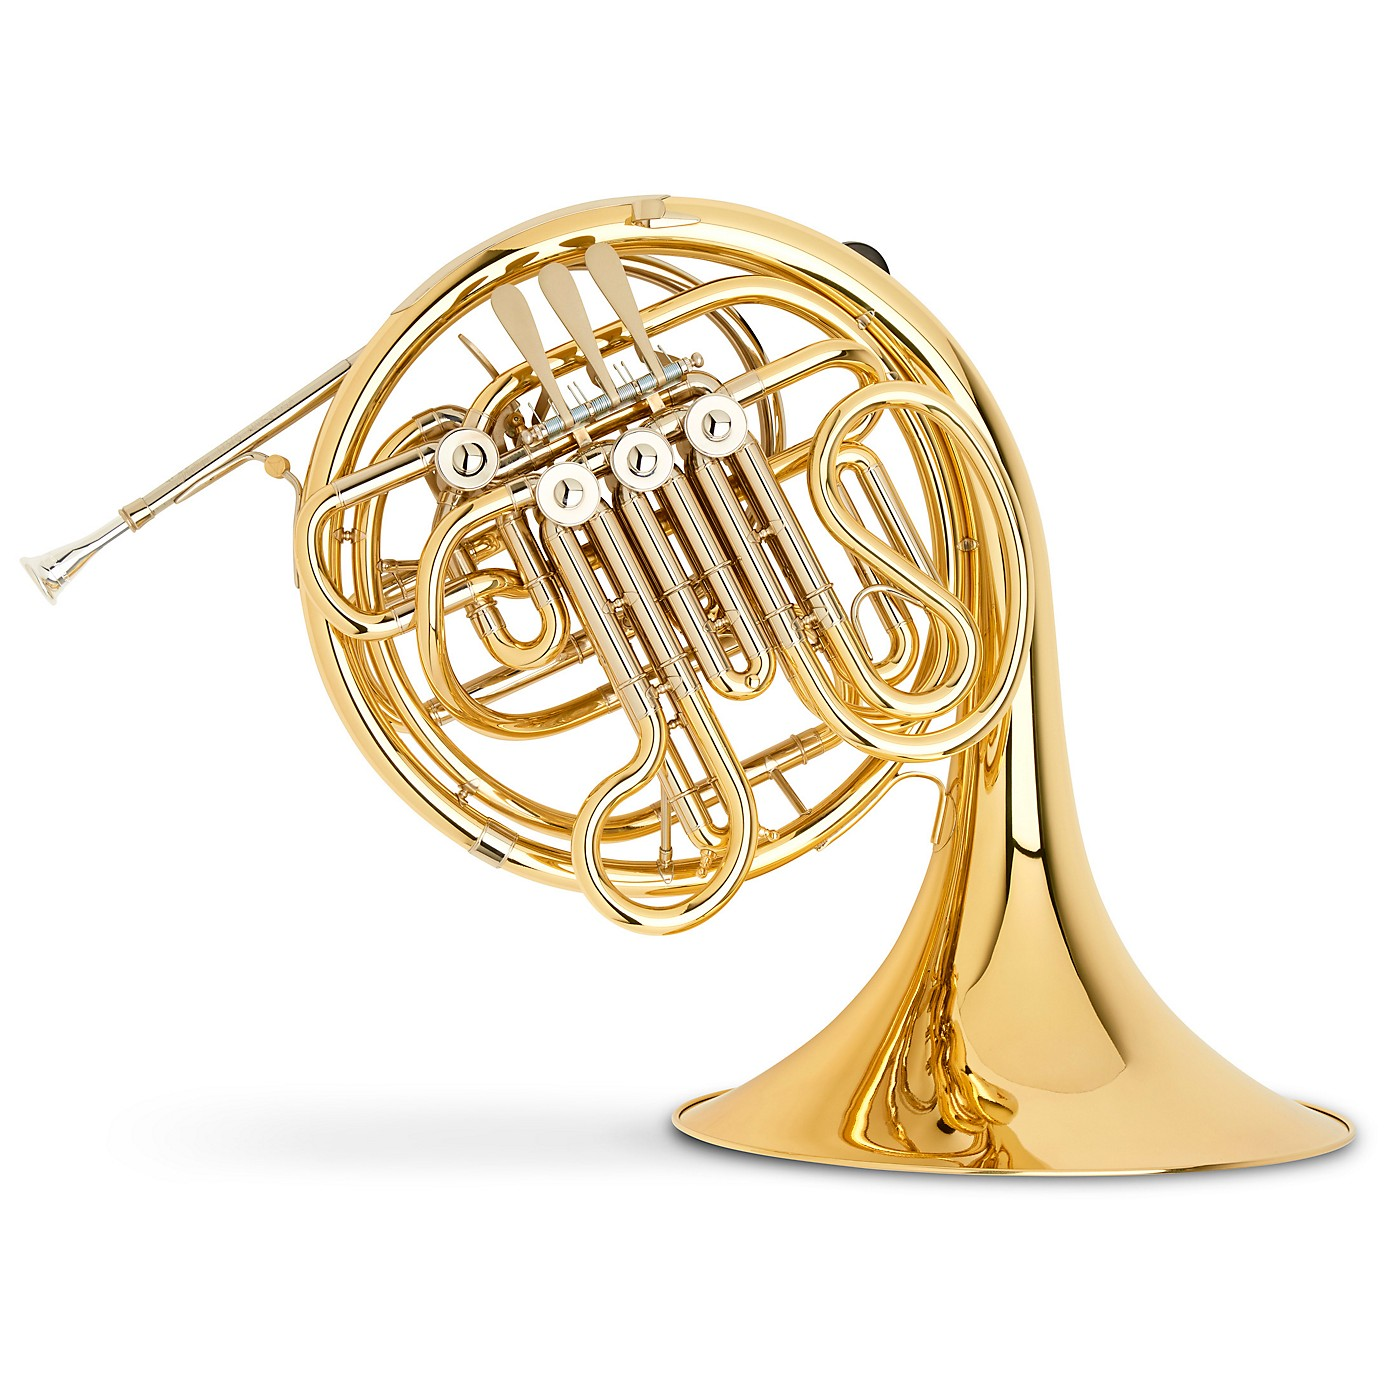 Holton H378 Intermediate French Horn thumbnail